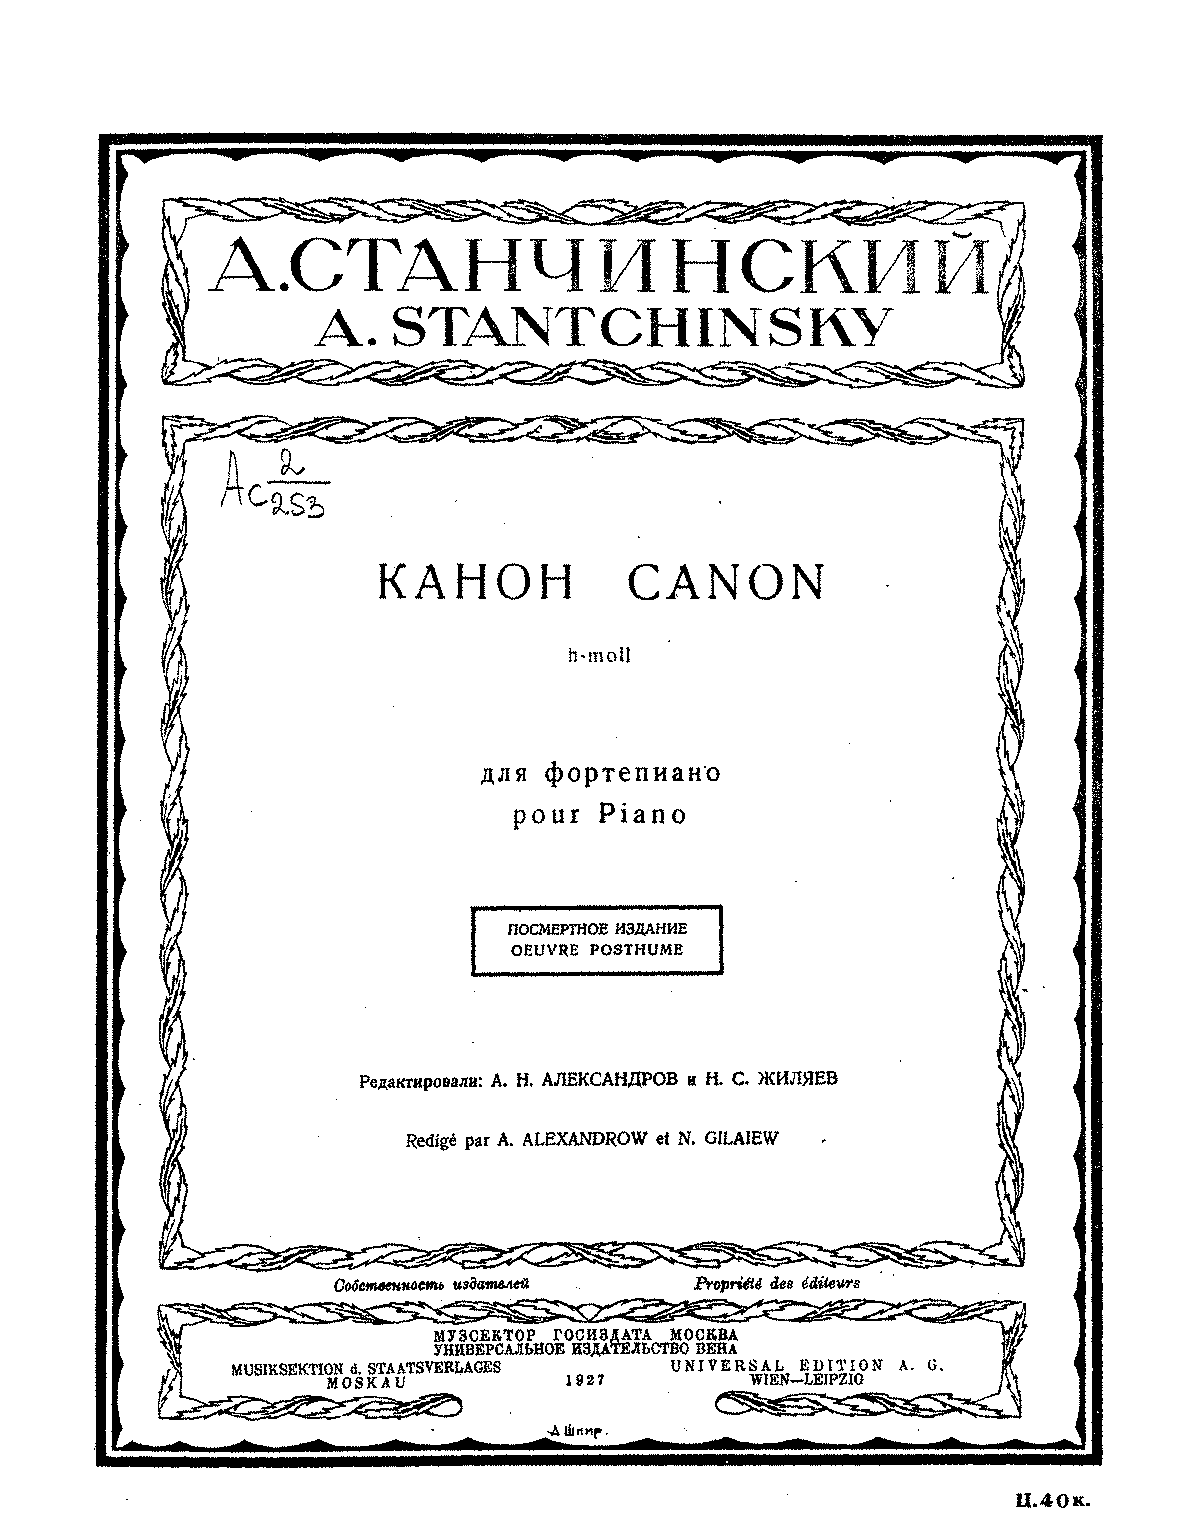 PMLP35926-Stanchinsky Canon in B minor.pdf